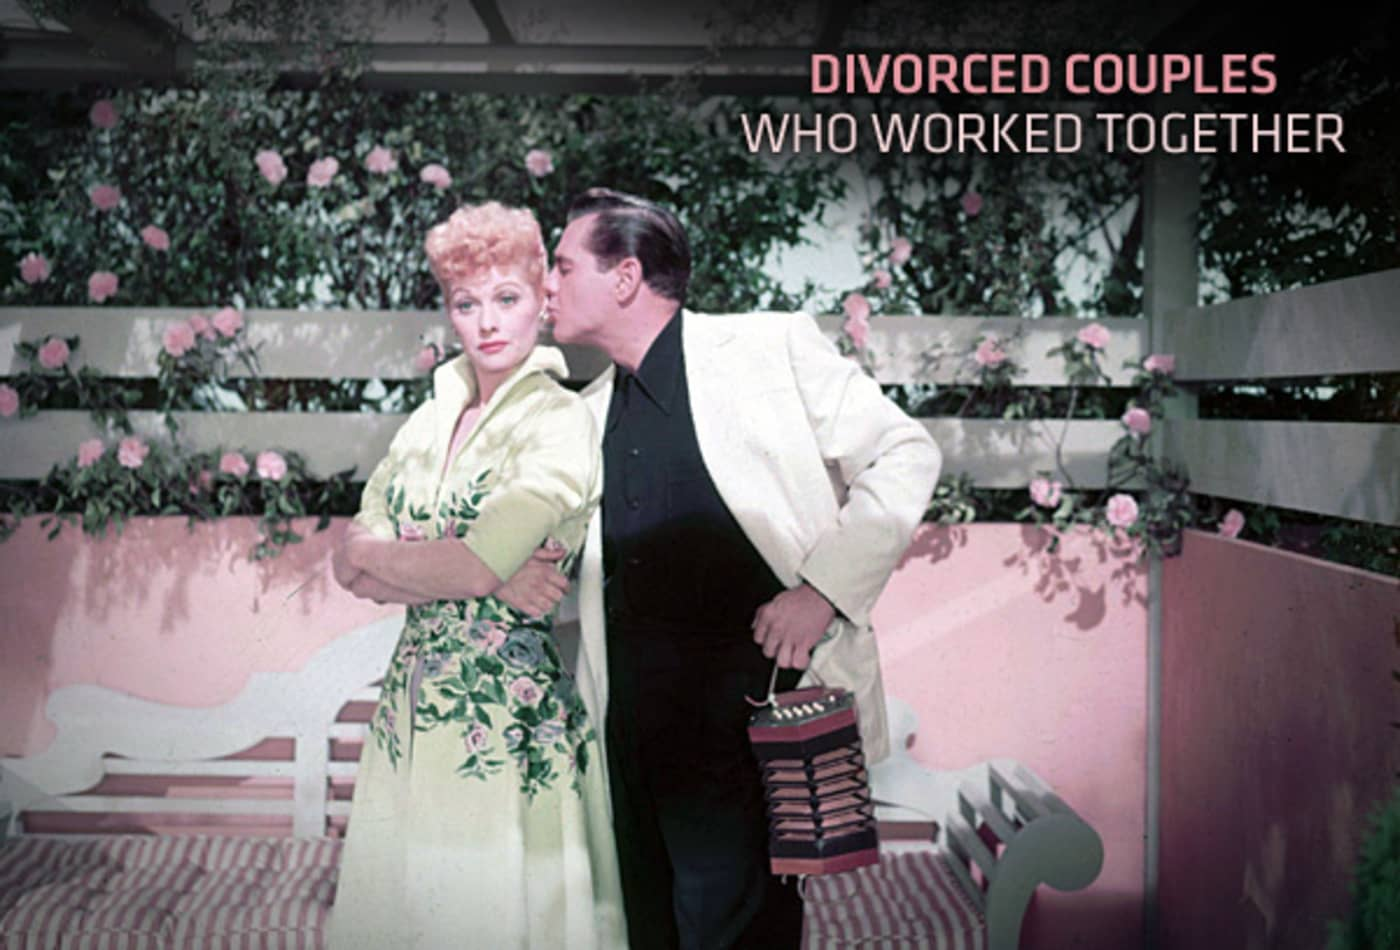 Divorced Couples Who Worked Together